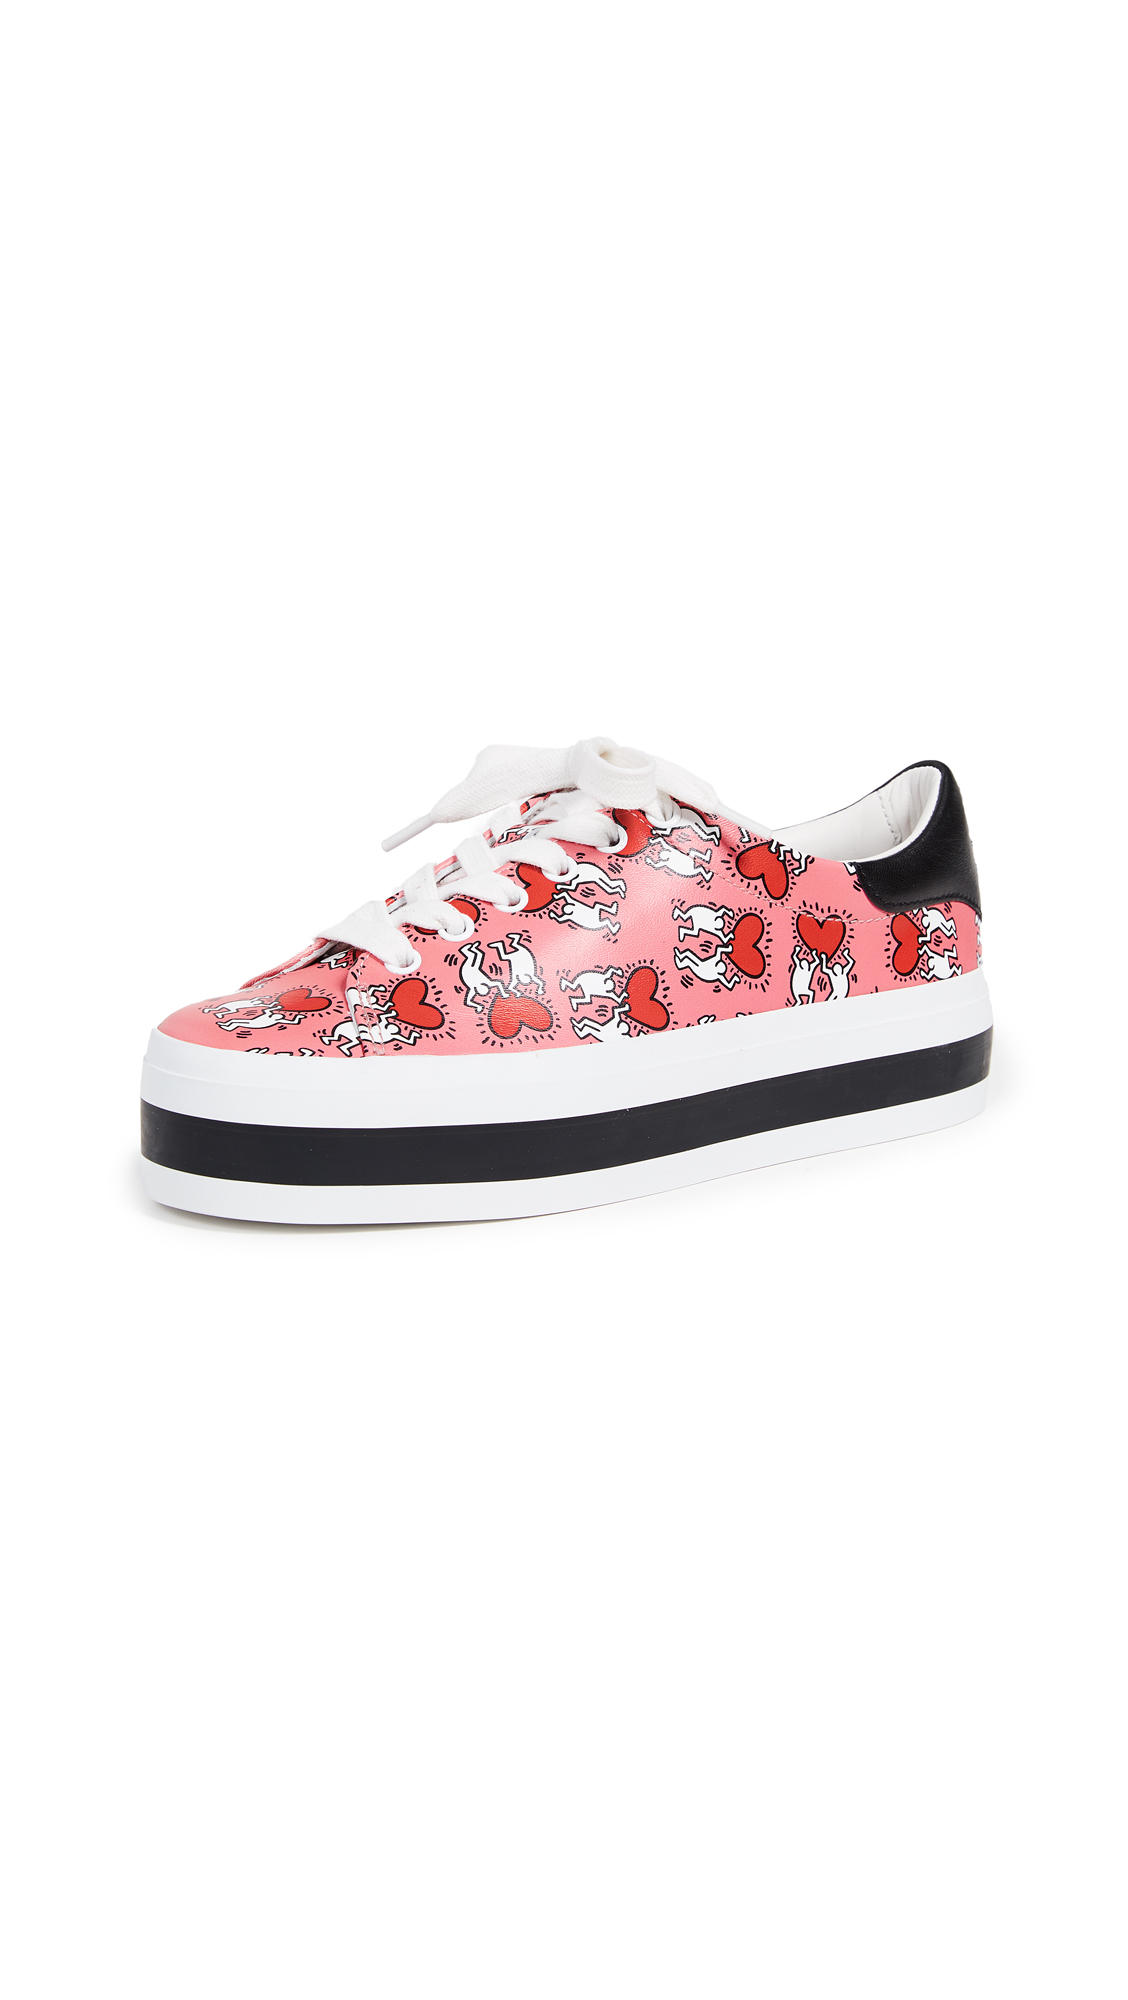 alice + olivia Keith Haring Ezra Sneakers - Walking Heart